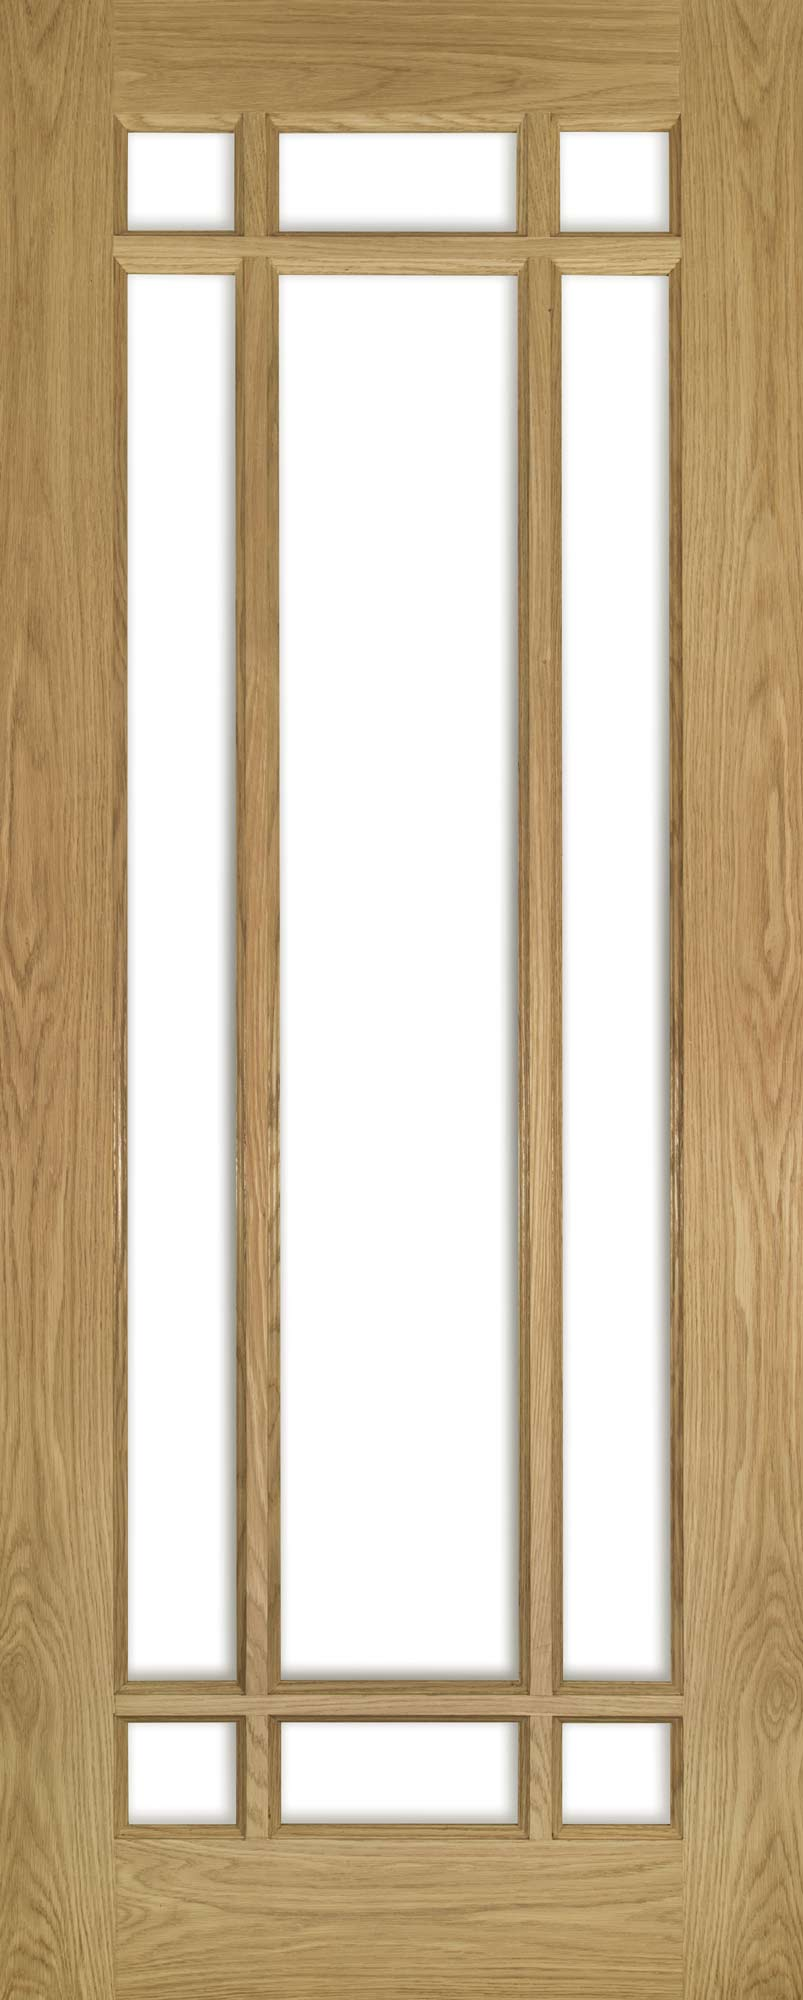 Deanta Unfinished Oak Kerry Glazed Door